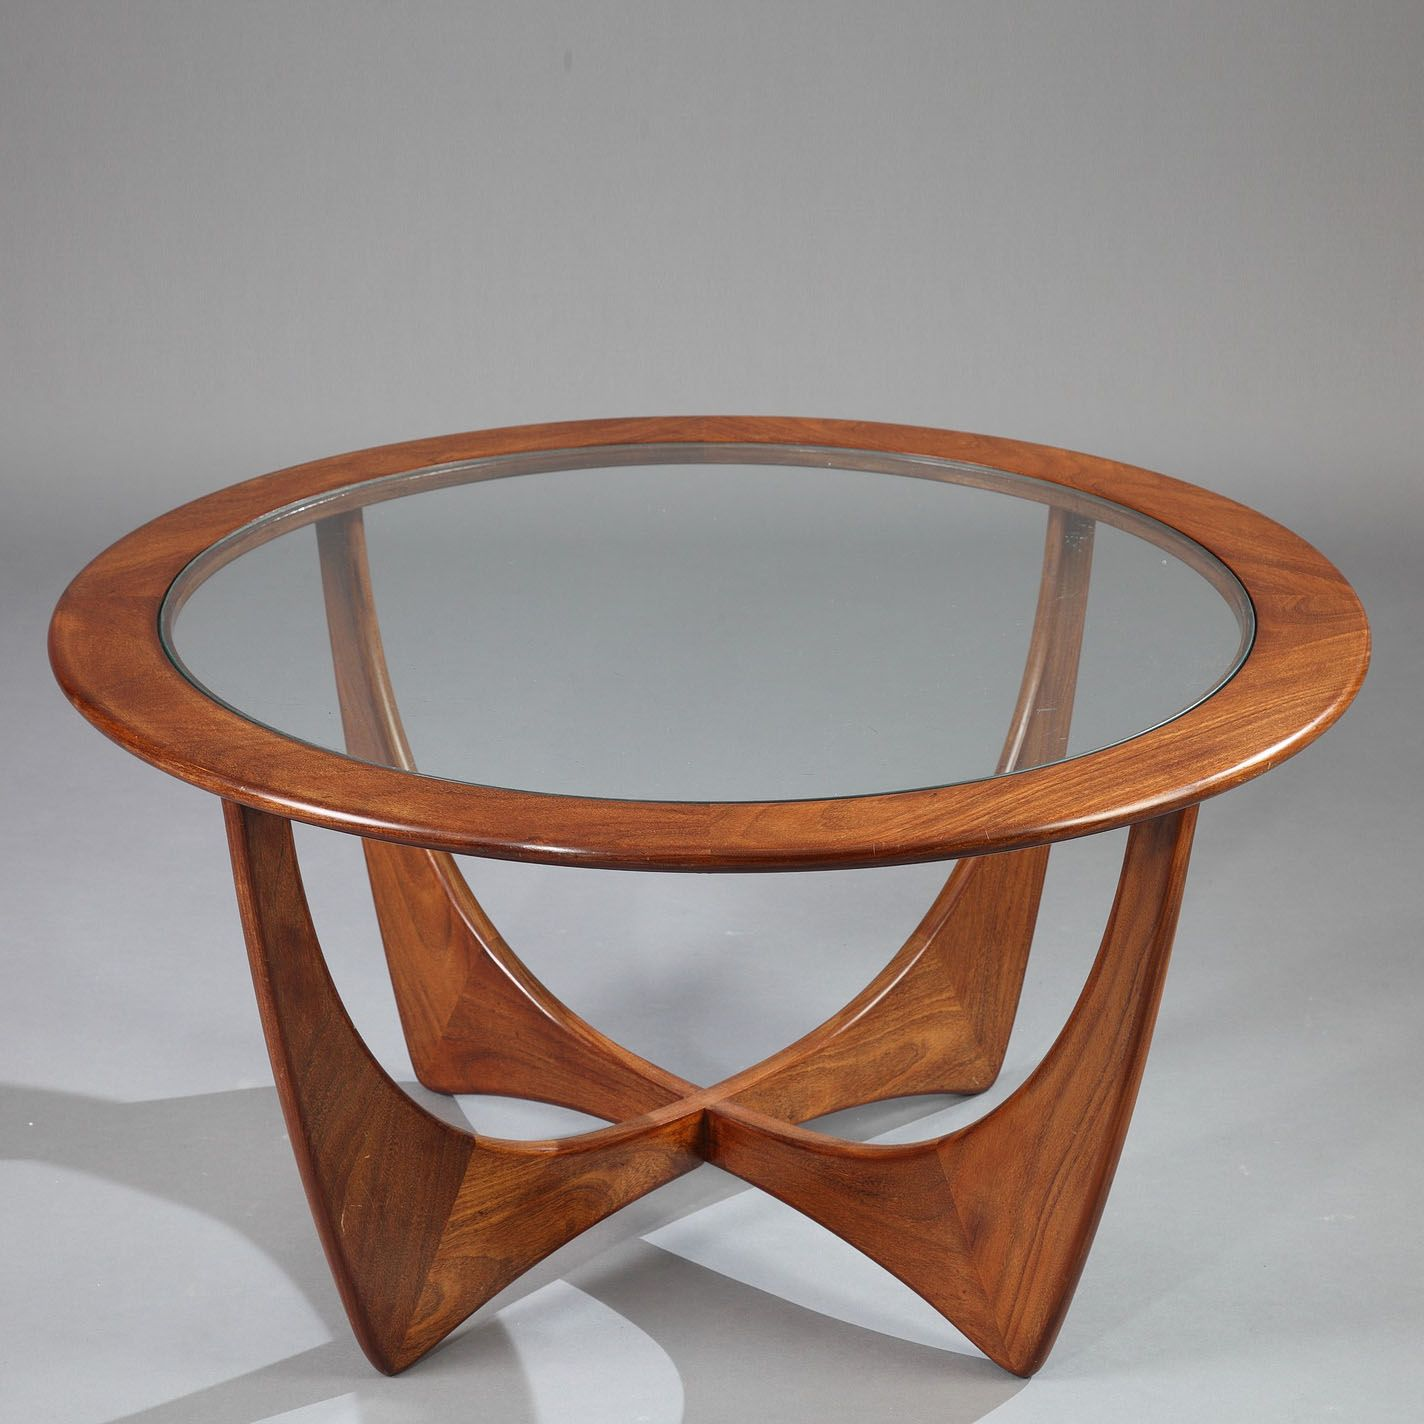 Table basse astro g plan et teck et verre de victor wilkins astro teak coffee table with glass top designed by victor wilkins in the g plan edition geotapseo Images